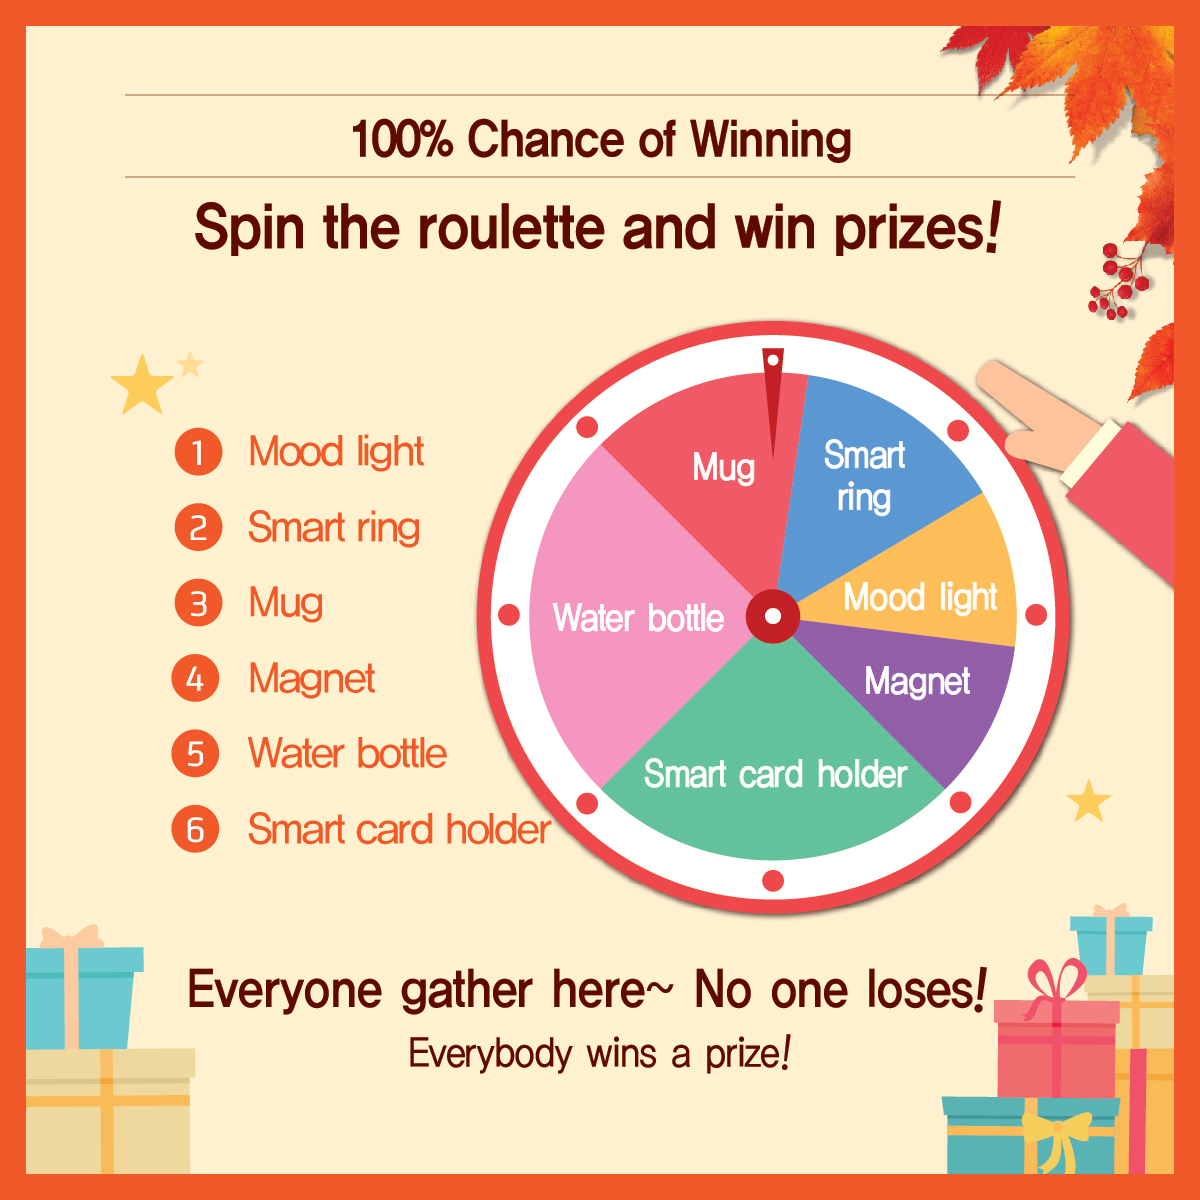 100% Chance of Winning Spin the roulette and win prizes! 1) Mood light 2) Smart ring 3) Mug 4) Magnet 5) Water bottle 6) Smart card holder Everyone gather here~ No one loses! Everybody wins a prize!